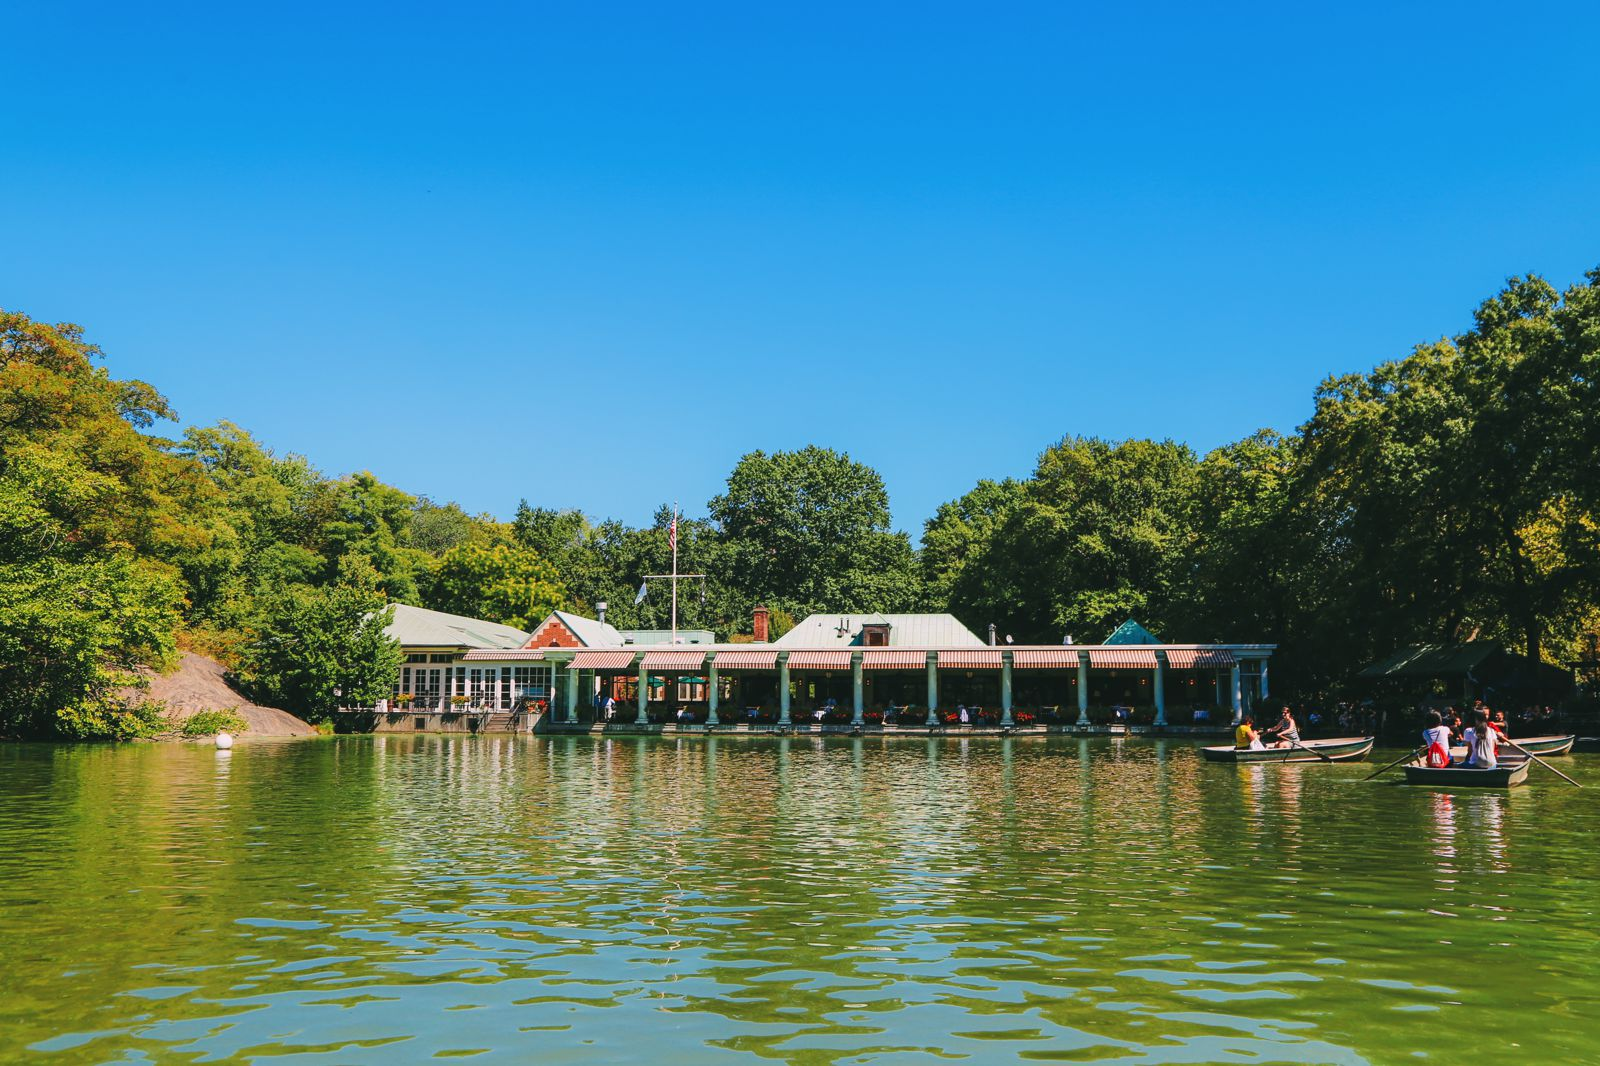 Boating at the Loeb Boathouse in Central Park, New York City (27)